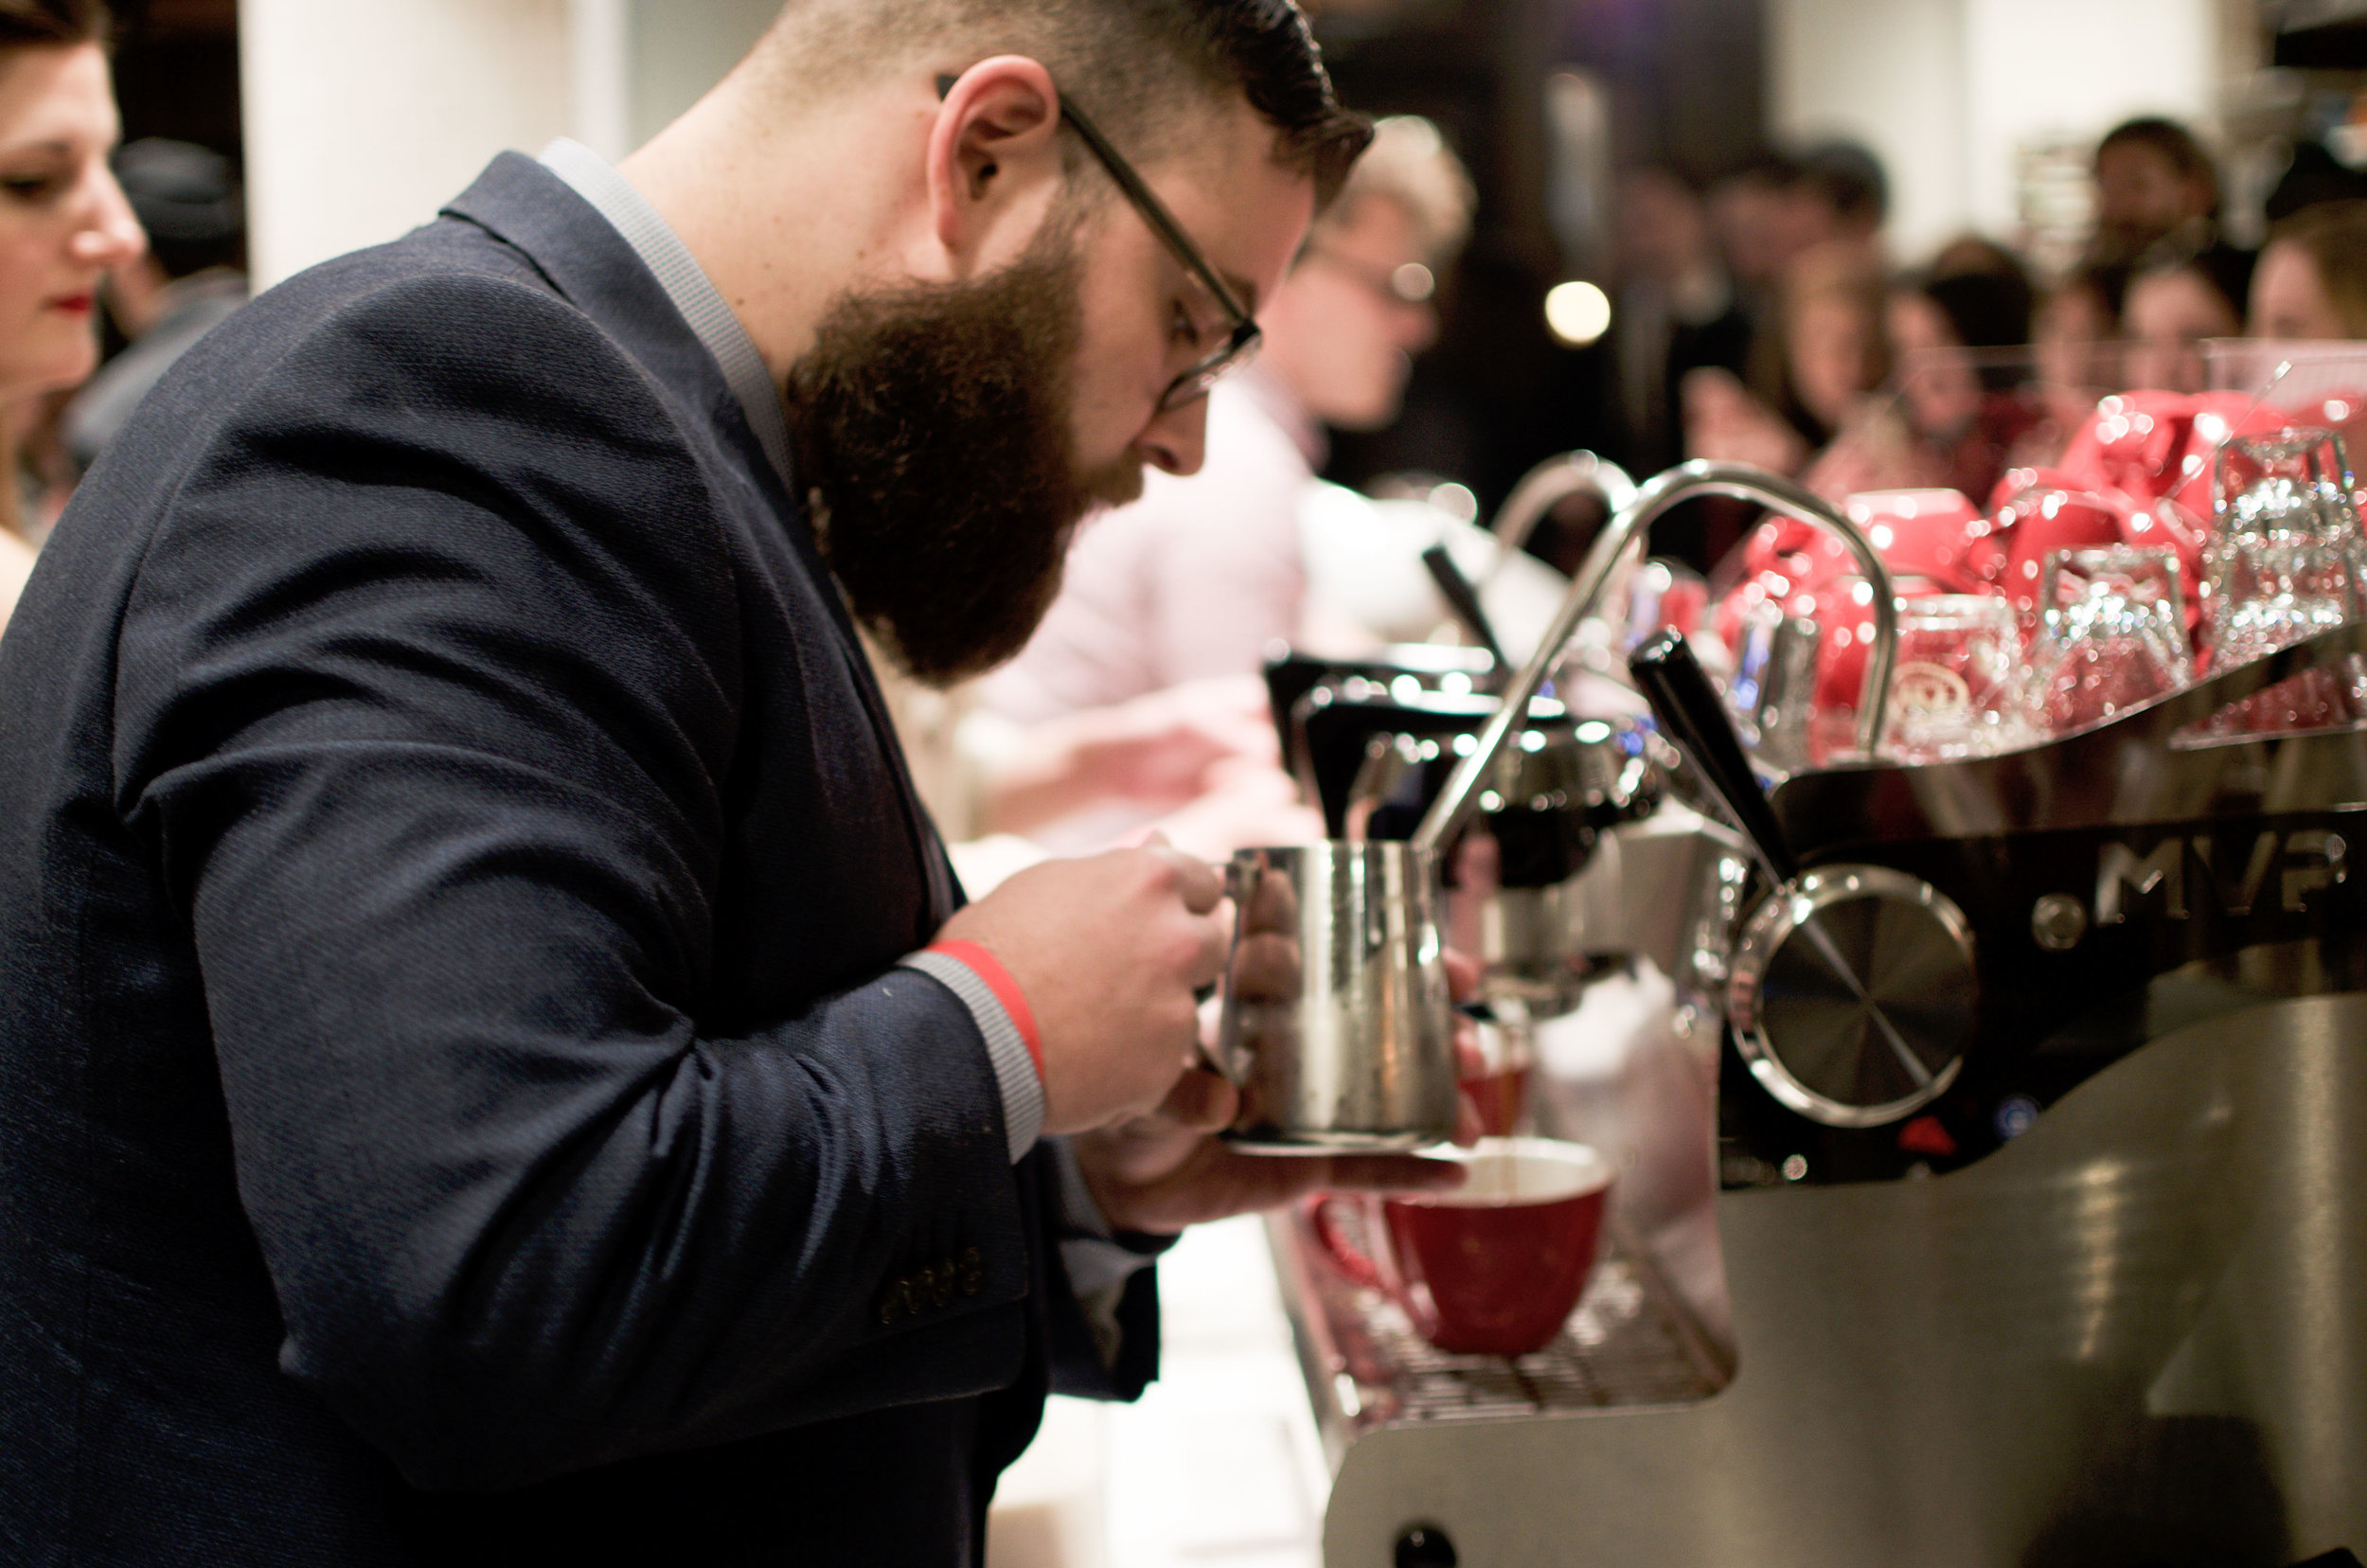 Wendling_Boyd_Ferris_Barista_Throwdown-19.jpg